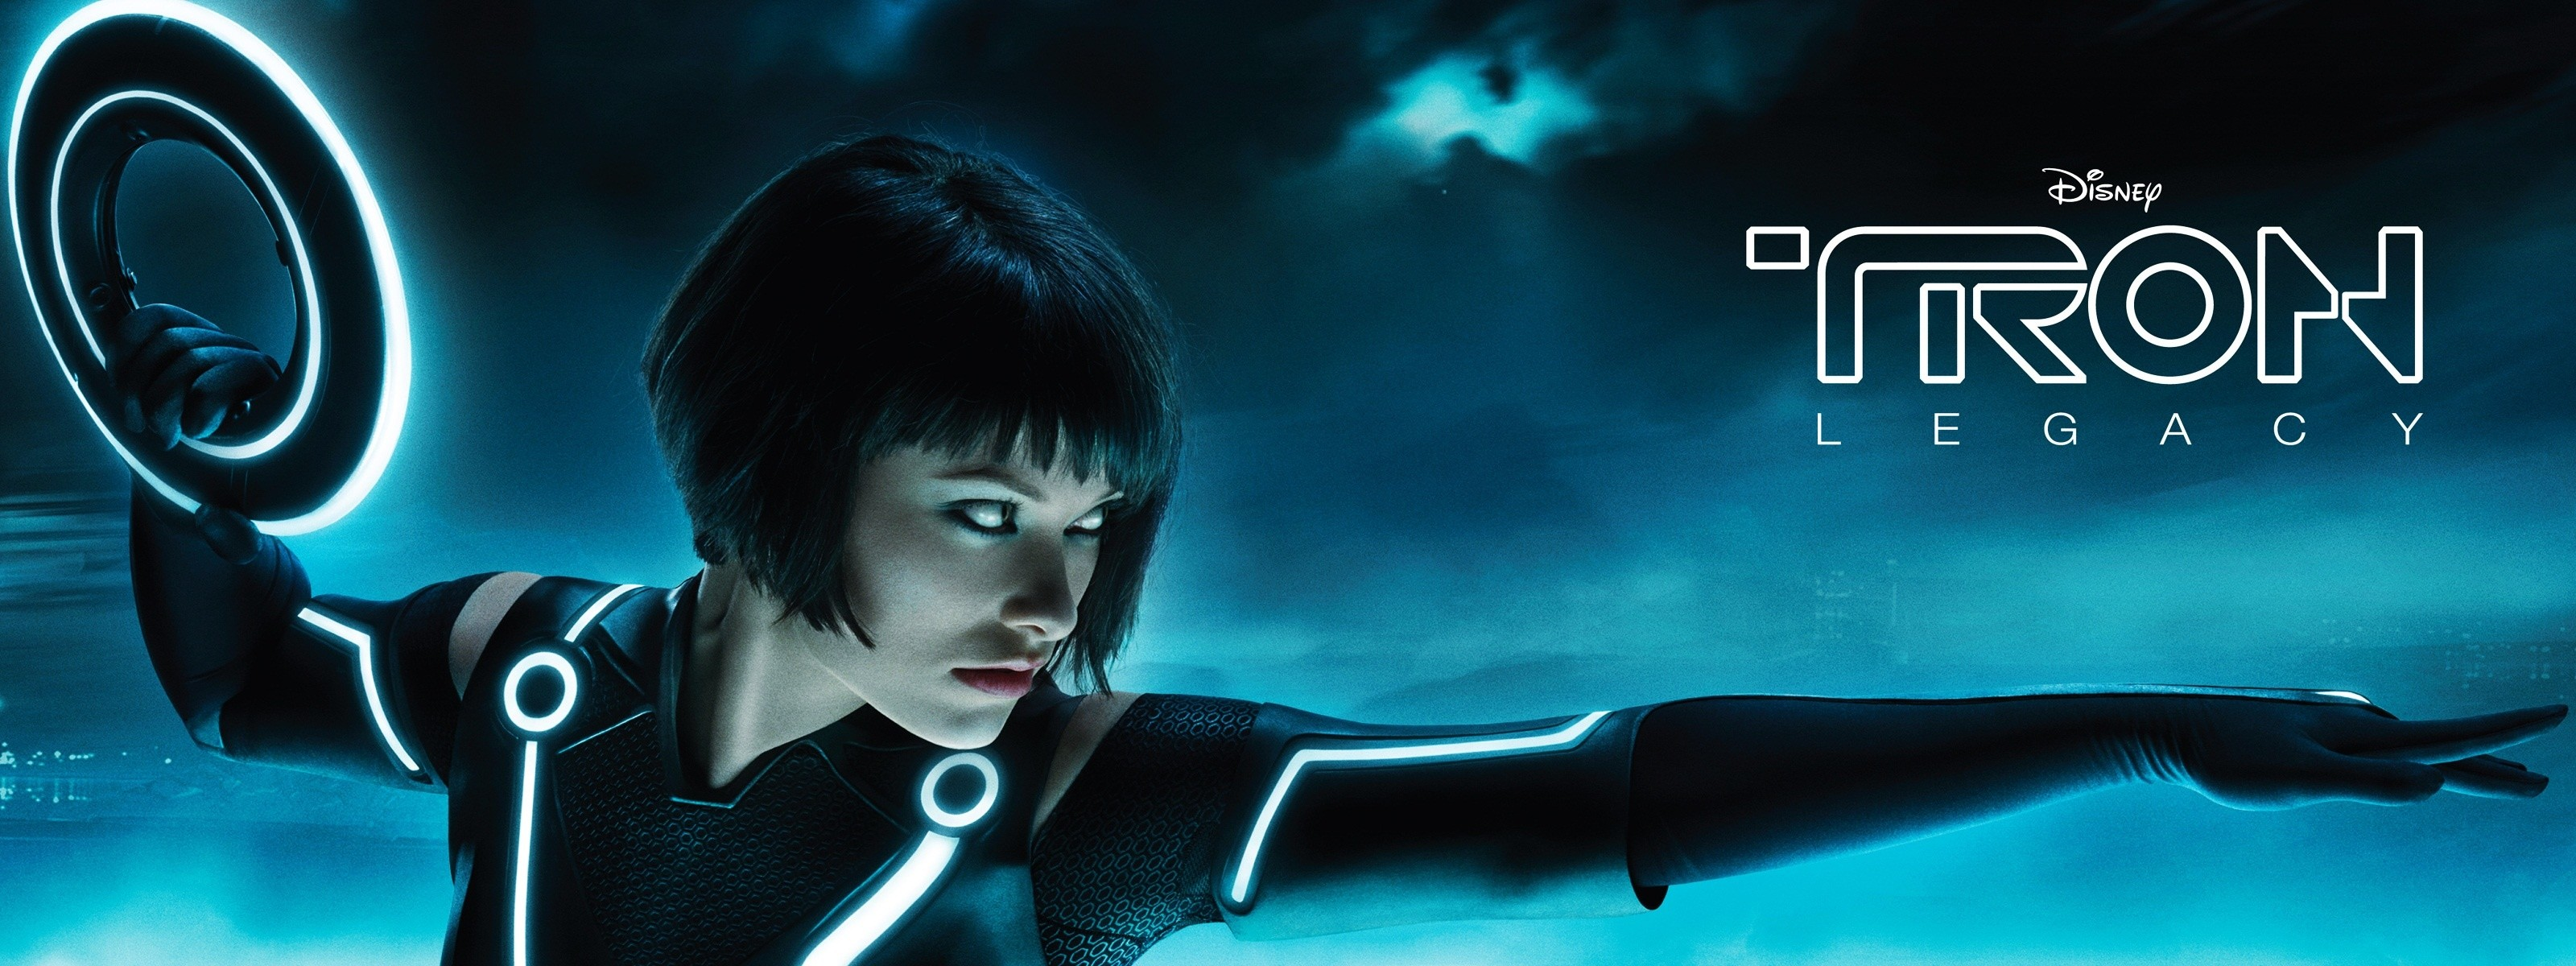 3200x1200 Tron Legacy Tripple Monitor wallpapers (66 Wallpapers)